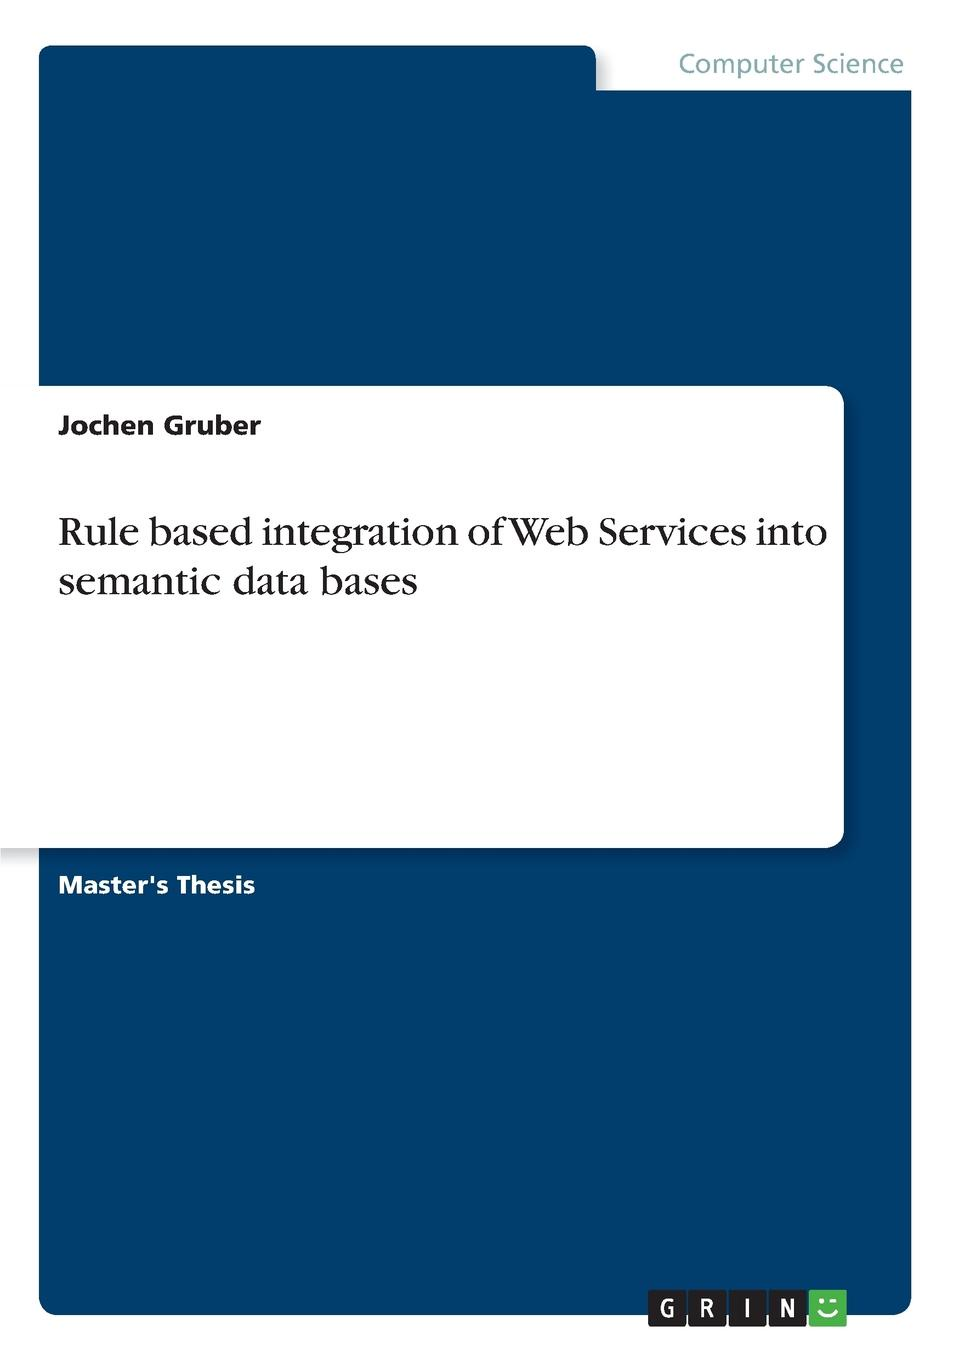 Jochen Gruber Rule based integration of Web Services into semantic data bases